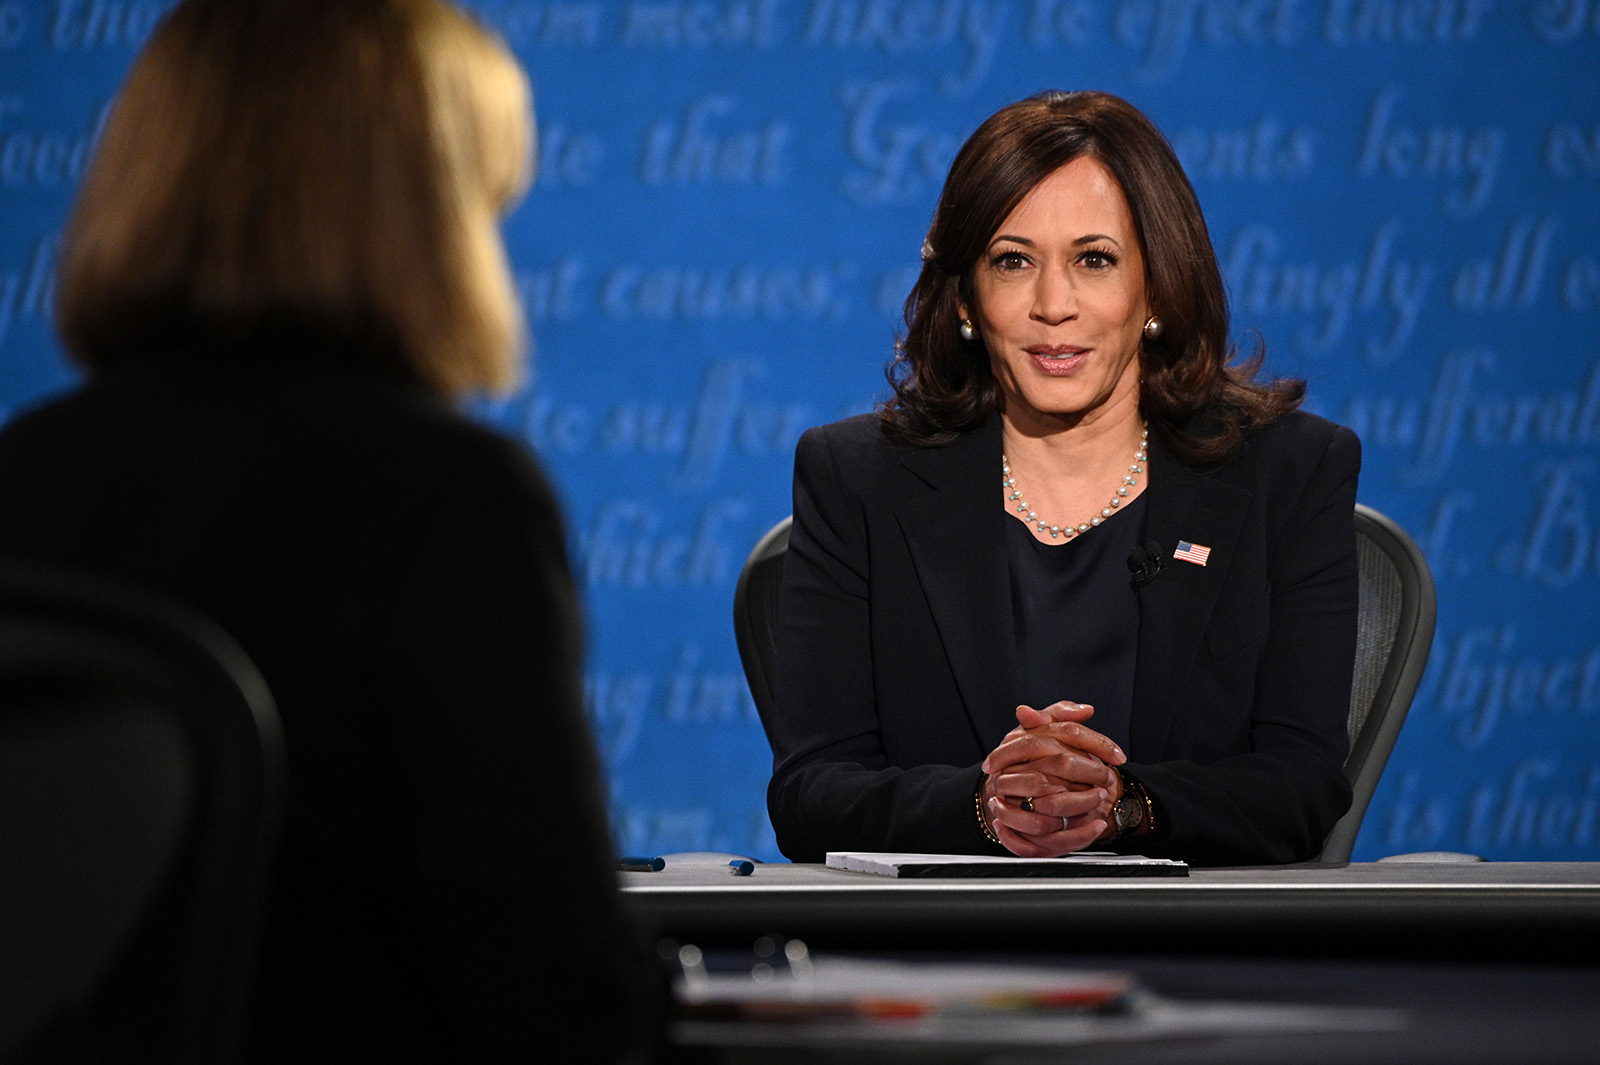 Kamala Harris arrives on stage for the vice presidential debate on Wednesday in Salt Lake City.